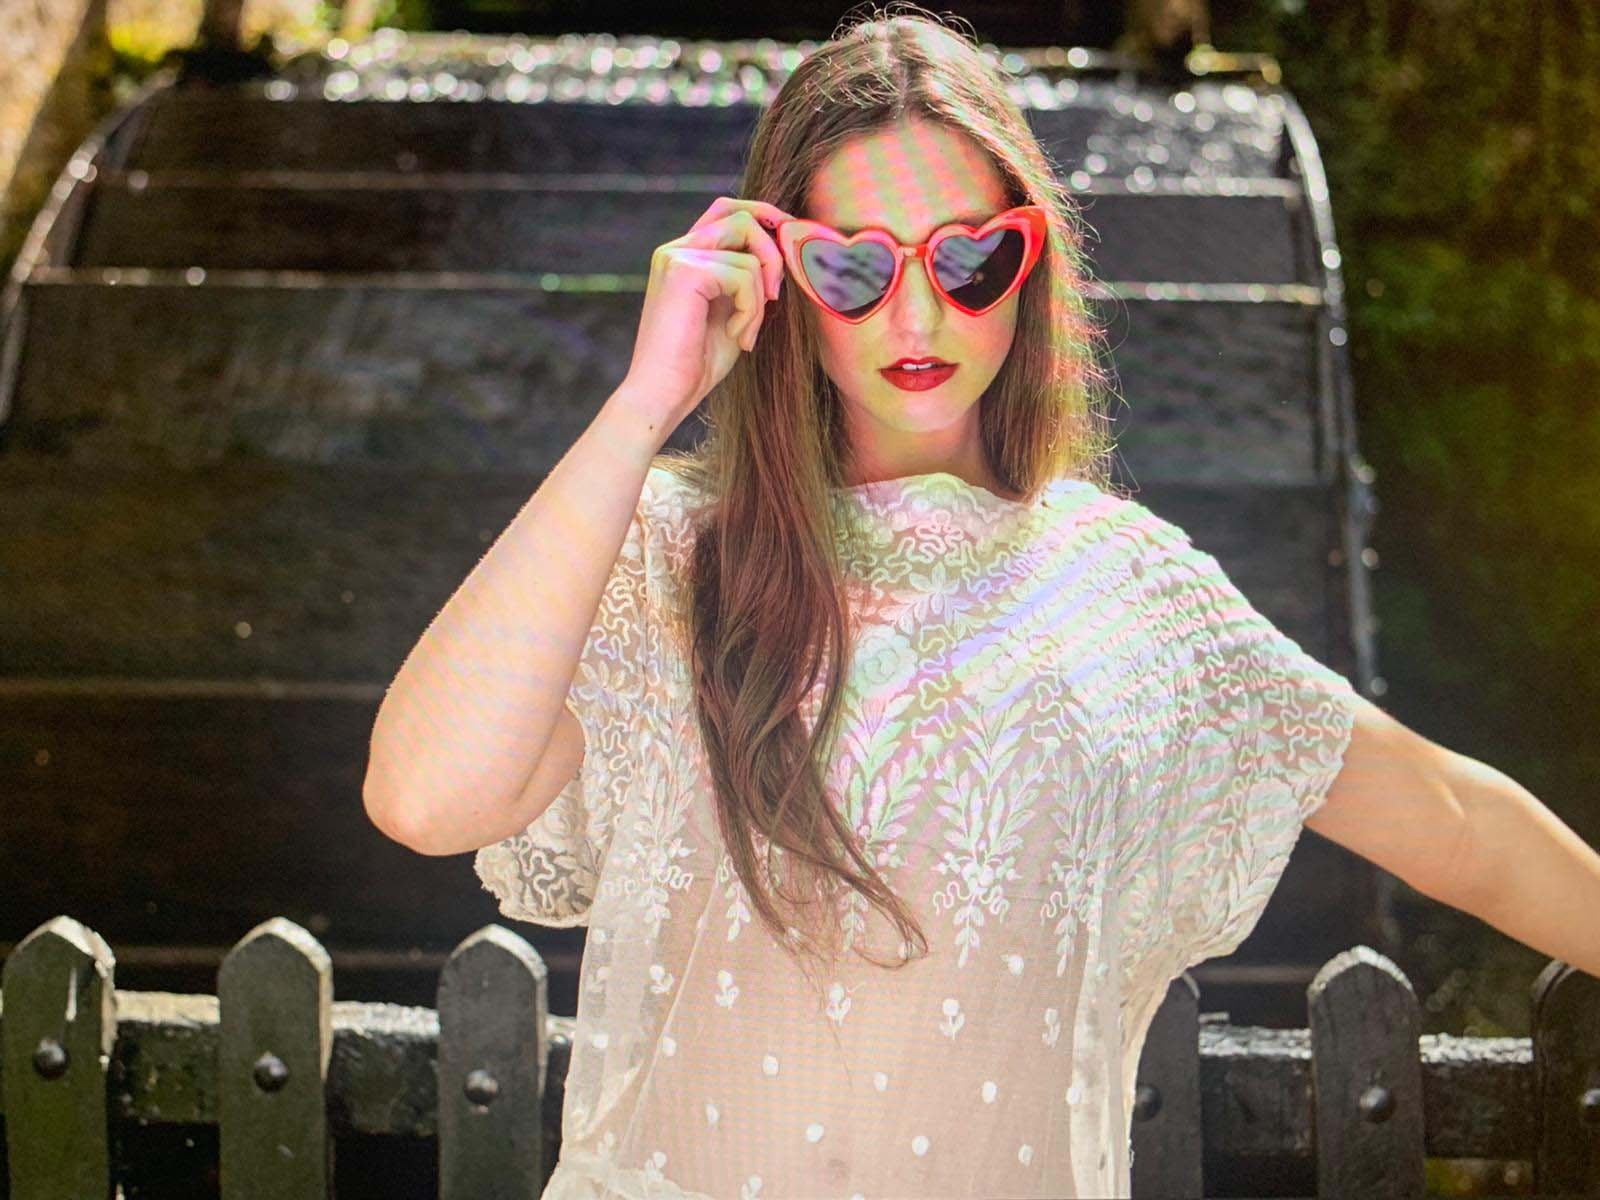 photo of a model with lng hair and heart shaped sunglasses wearing a lace dress